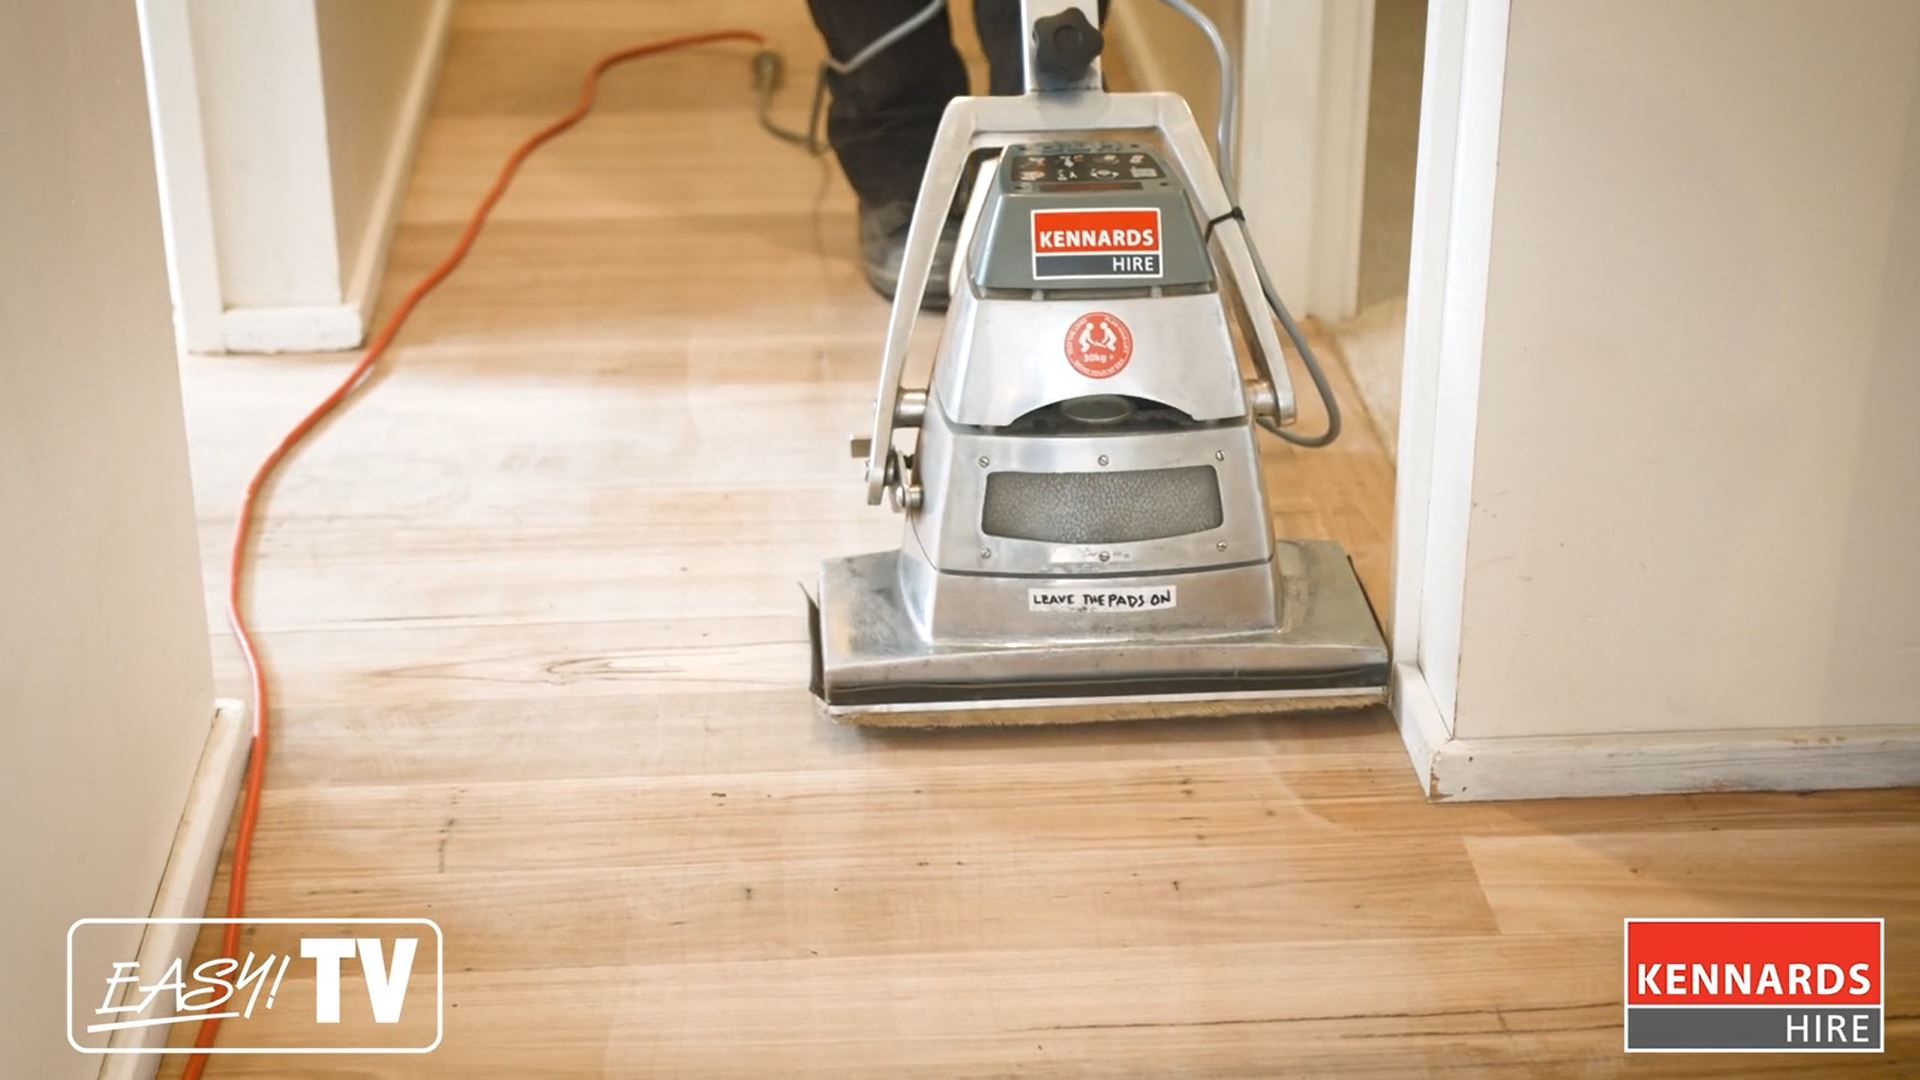 4. Using the orbital floor sander